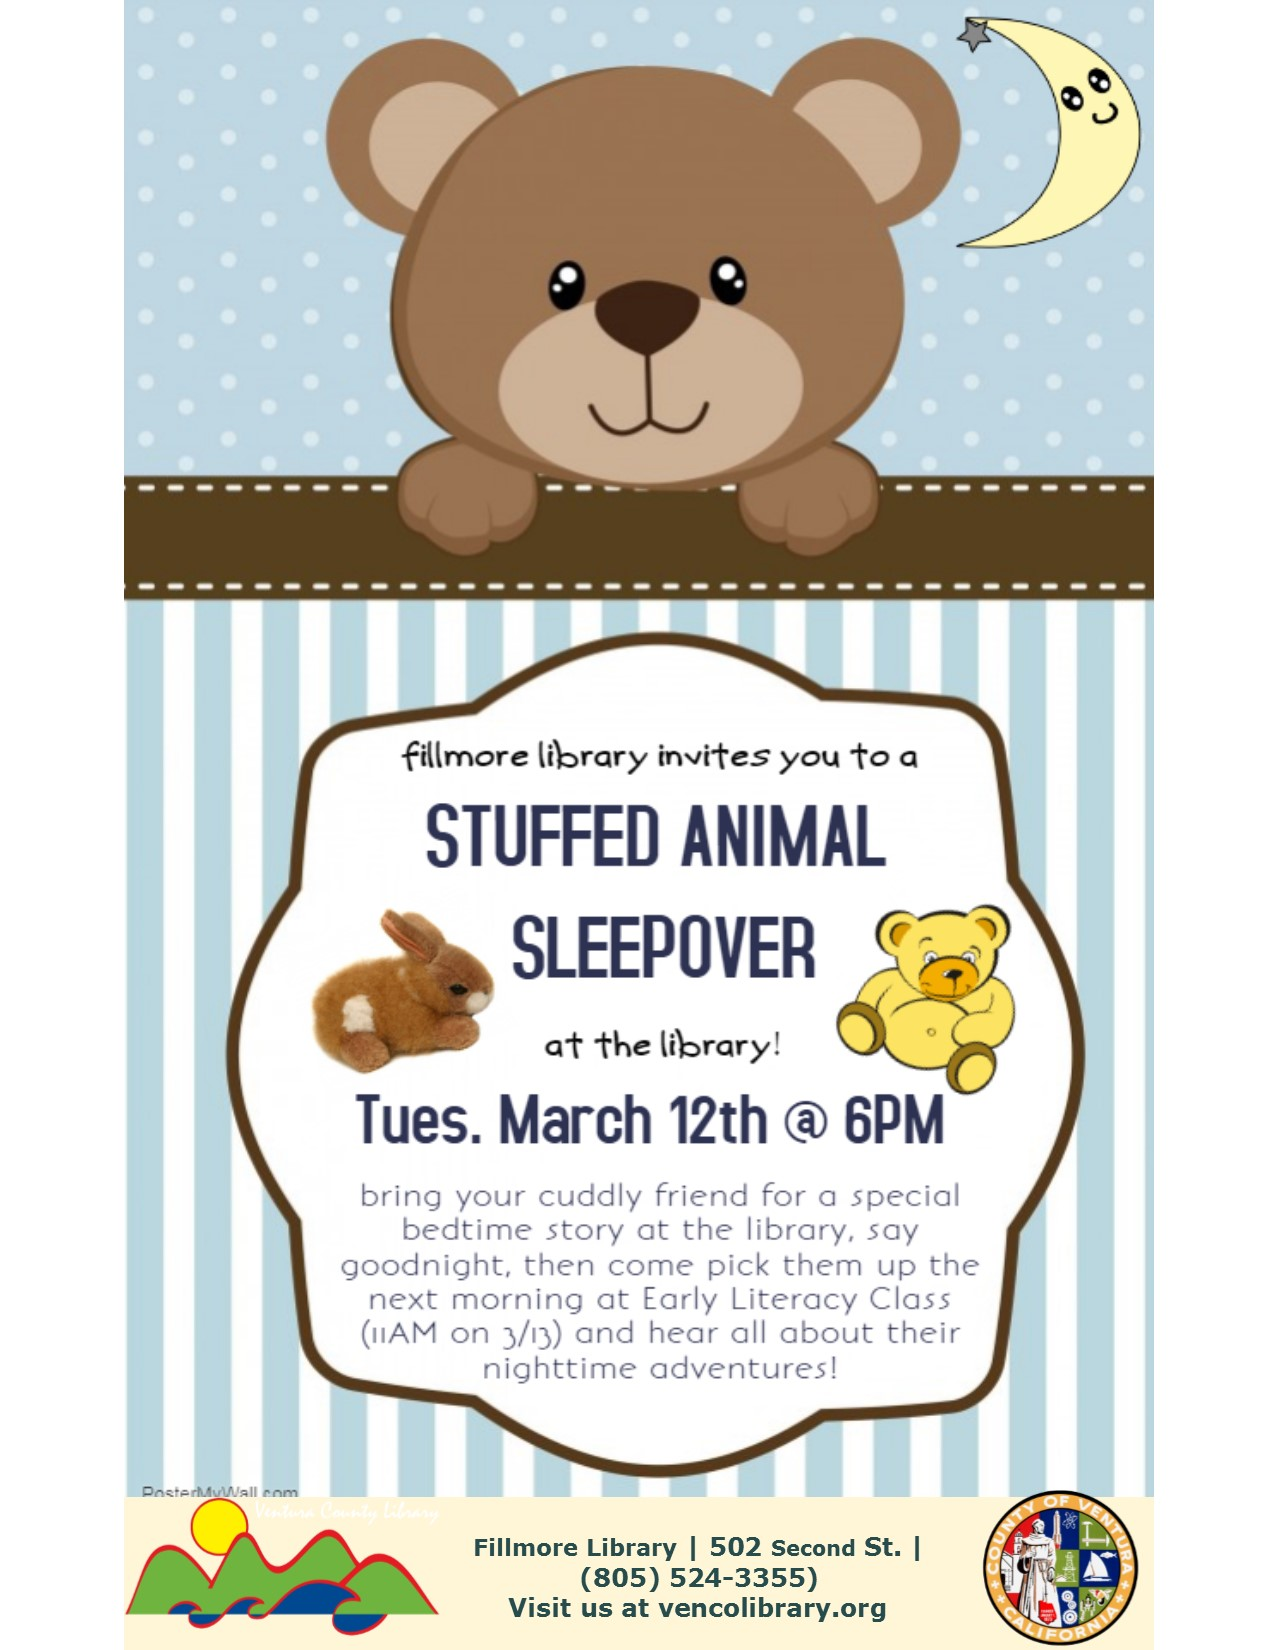 Event flyer with teddy bear image